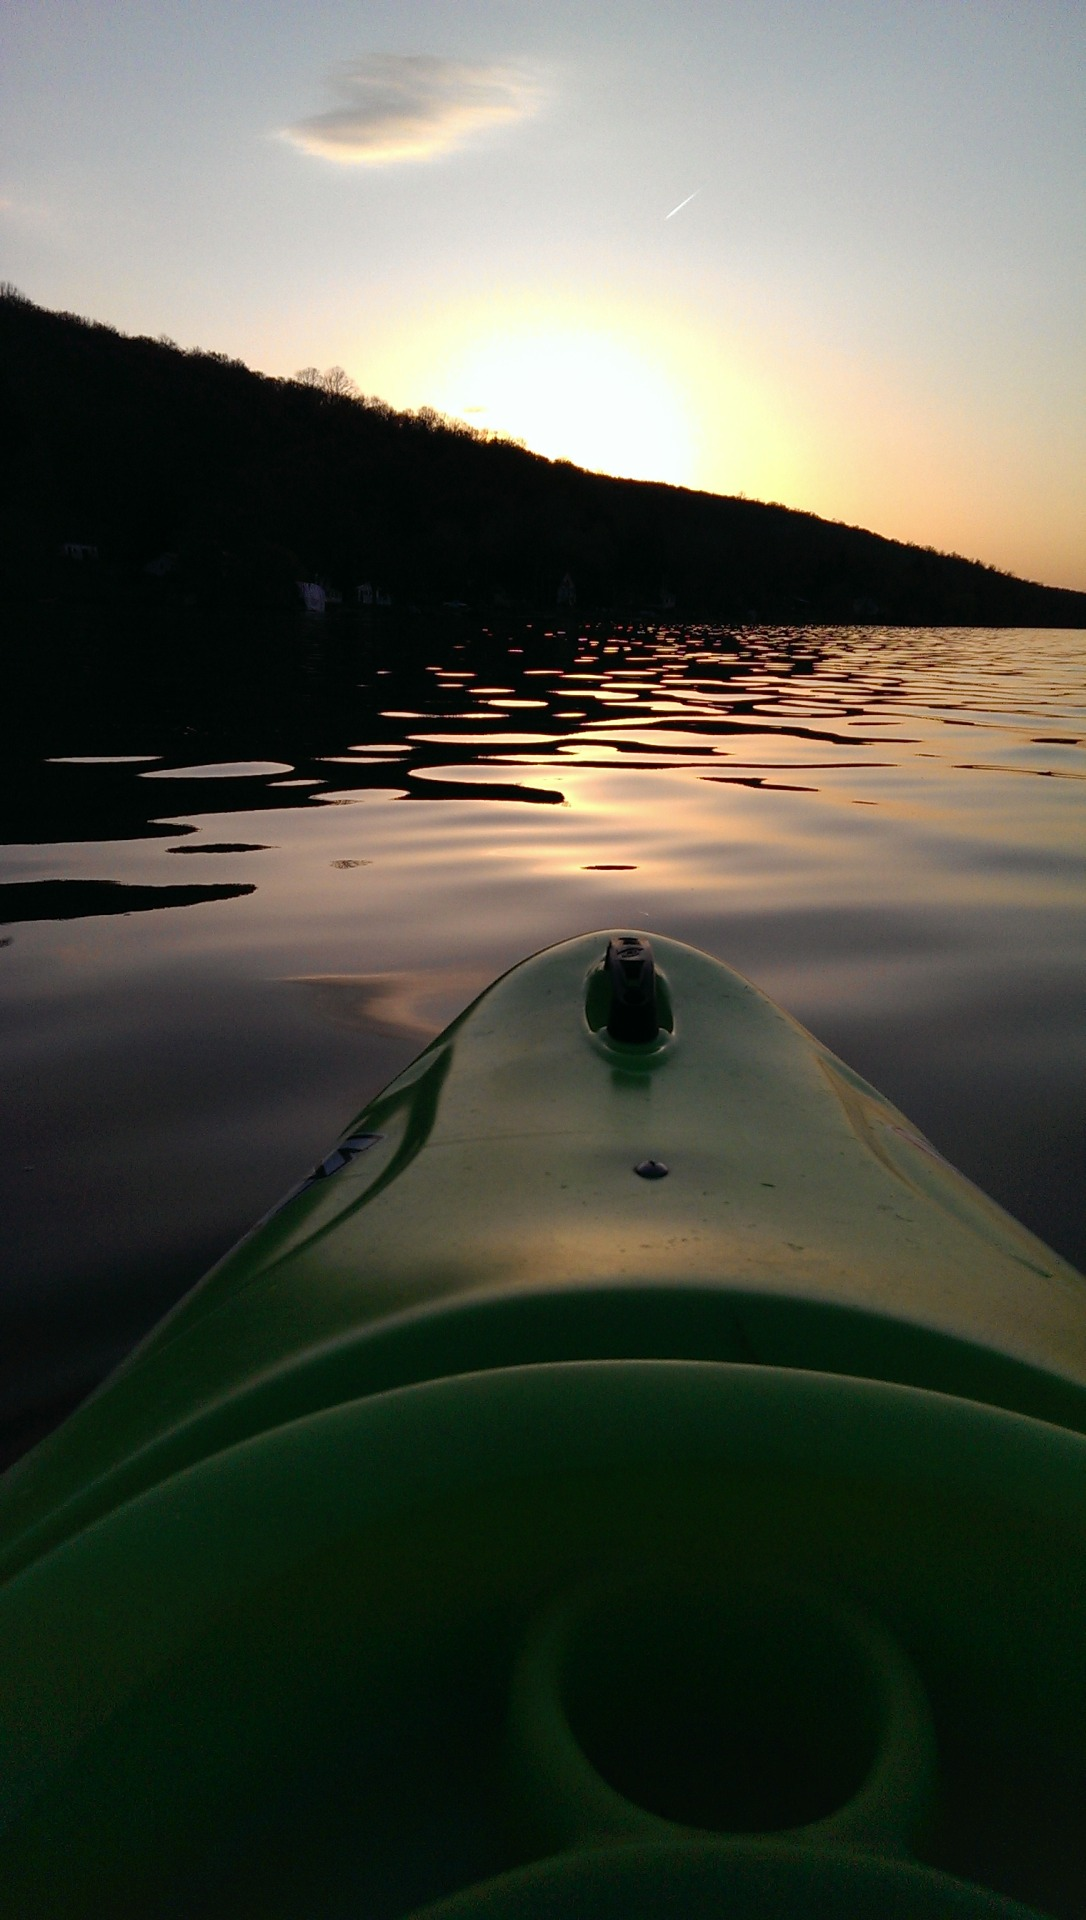 kayak, tonight